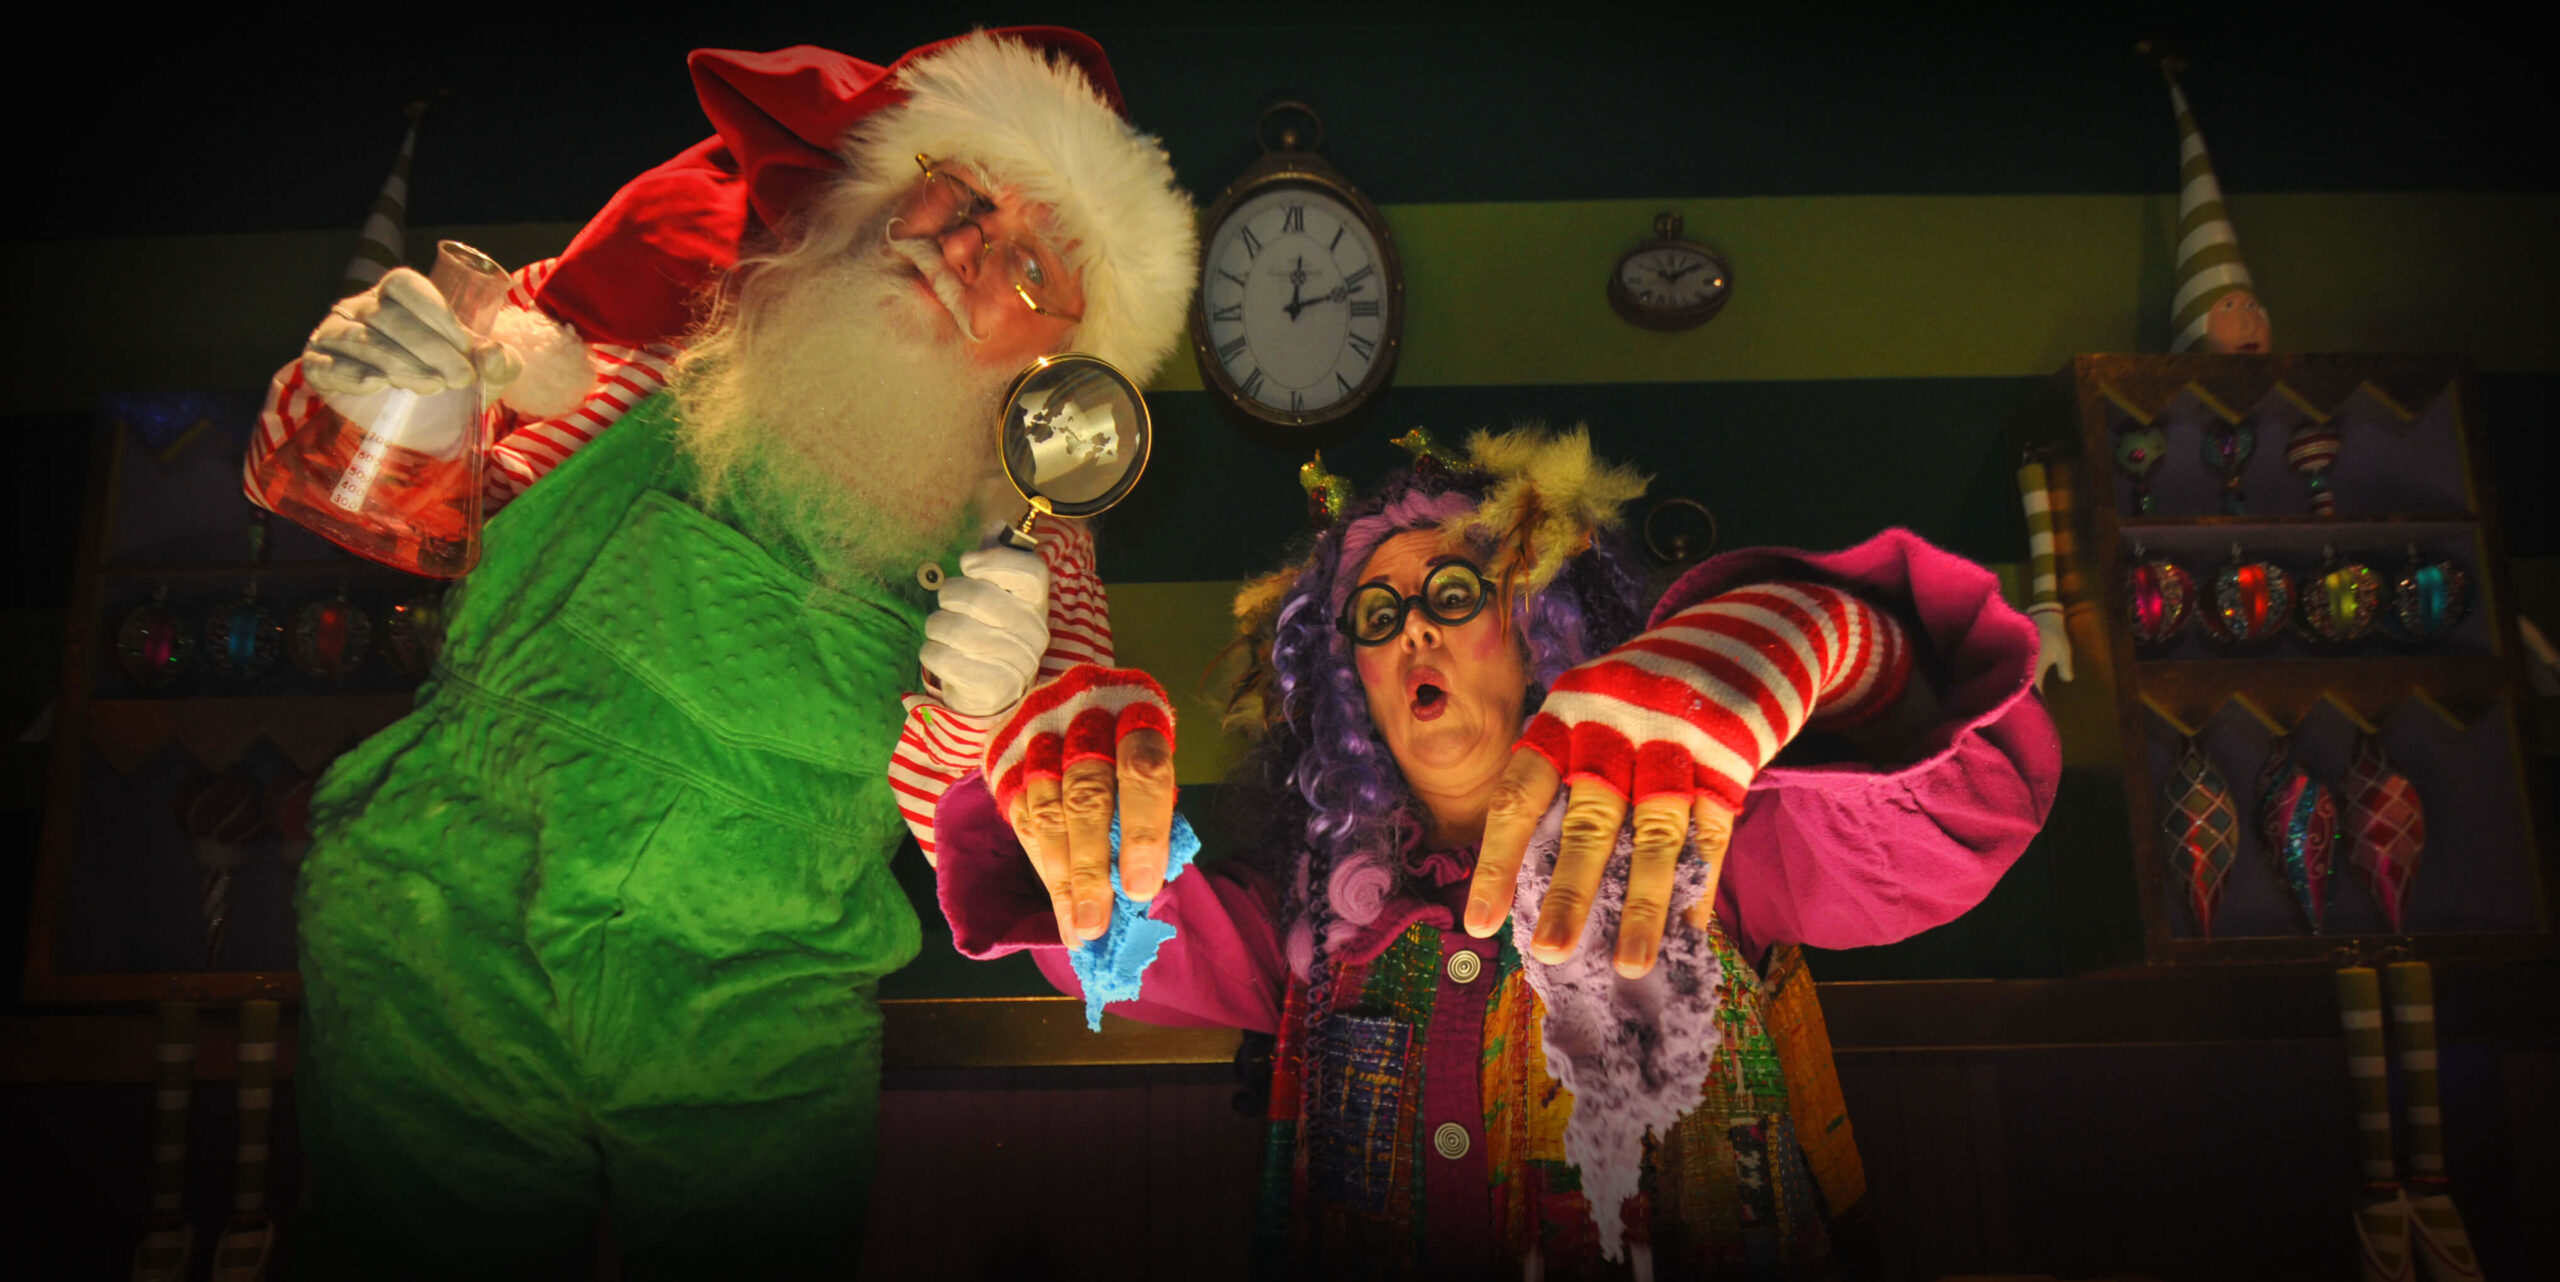 See Santa Claus in Cleveland, Ohio at Kringle's Inventionasium Experience in Tower City